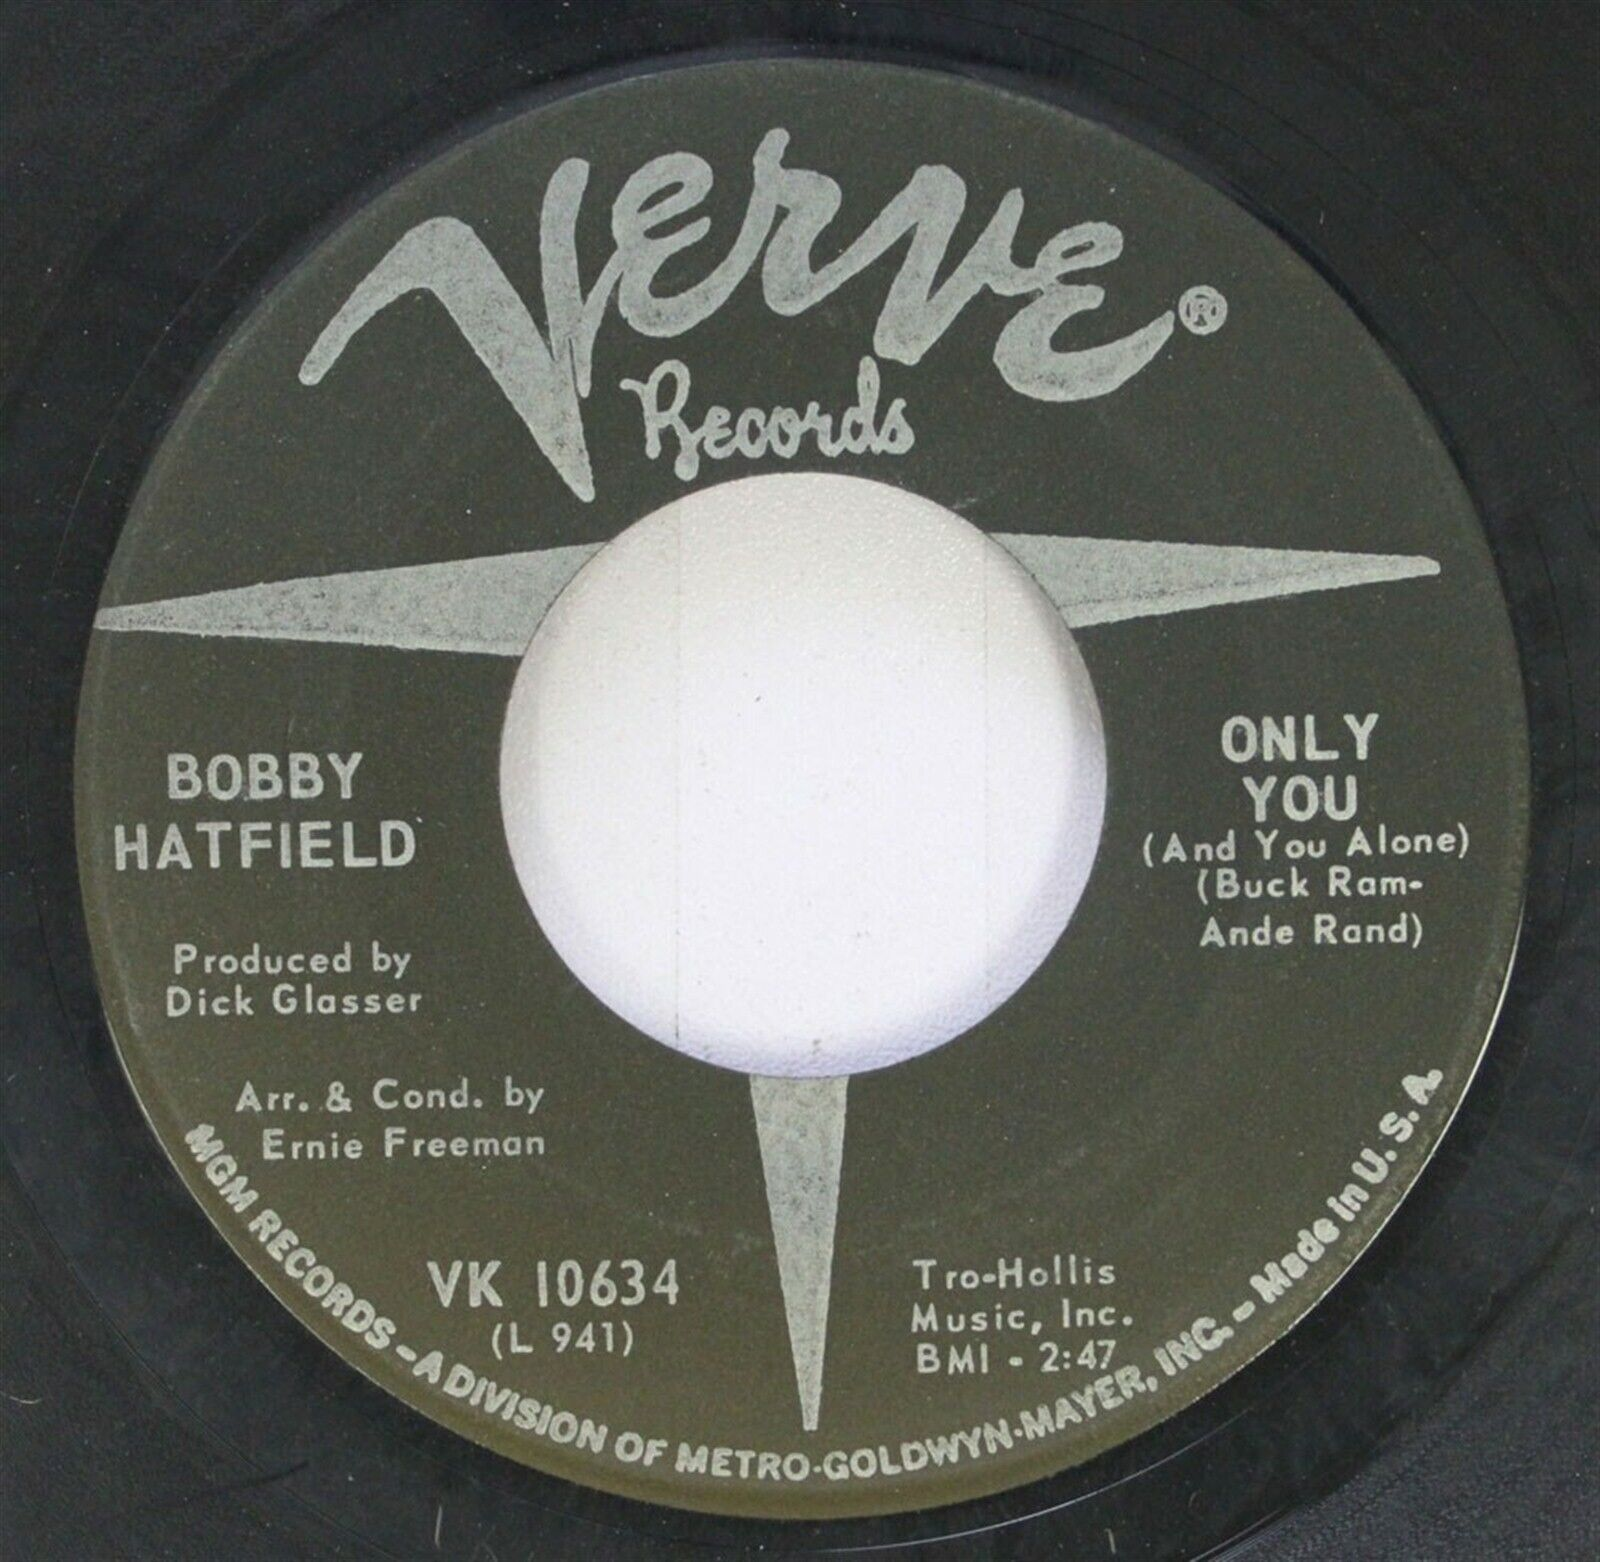 Image result for bobby hatfield only you single image